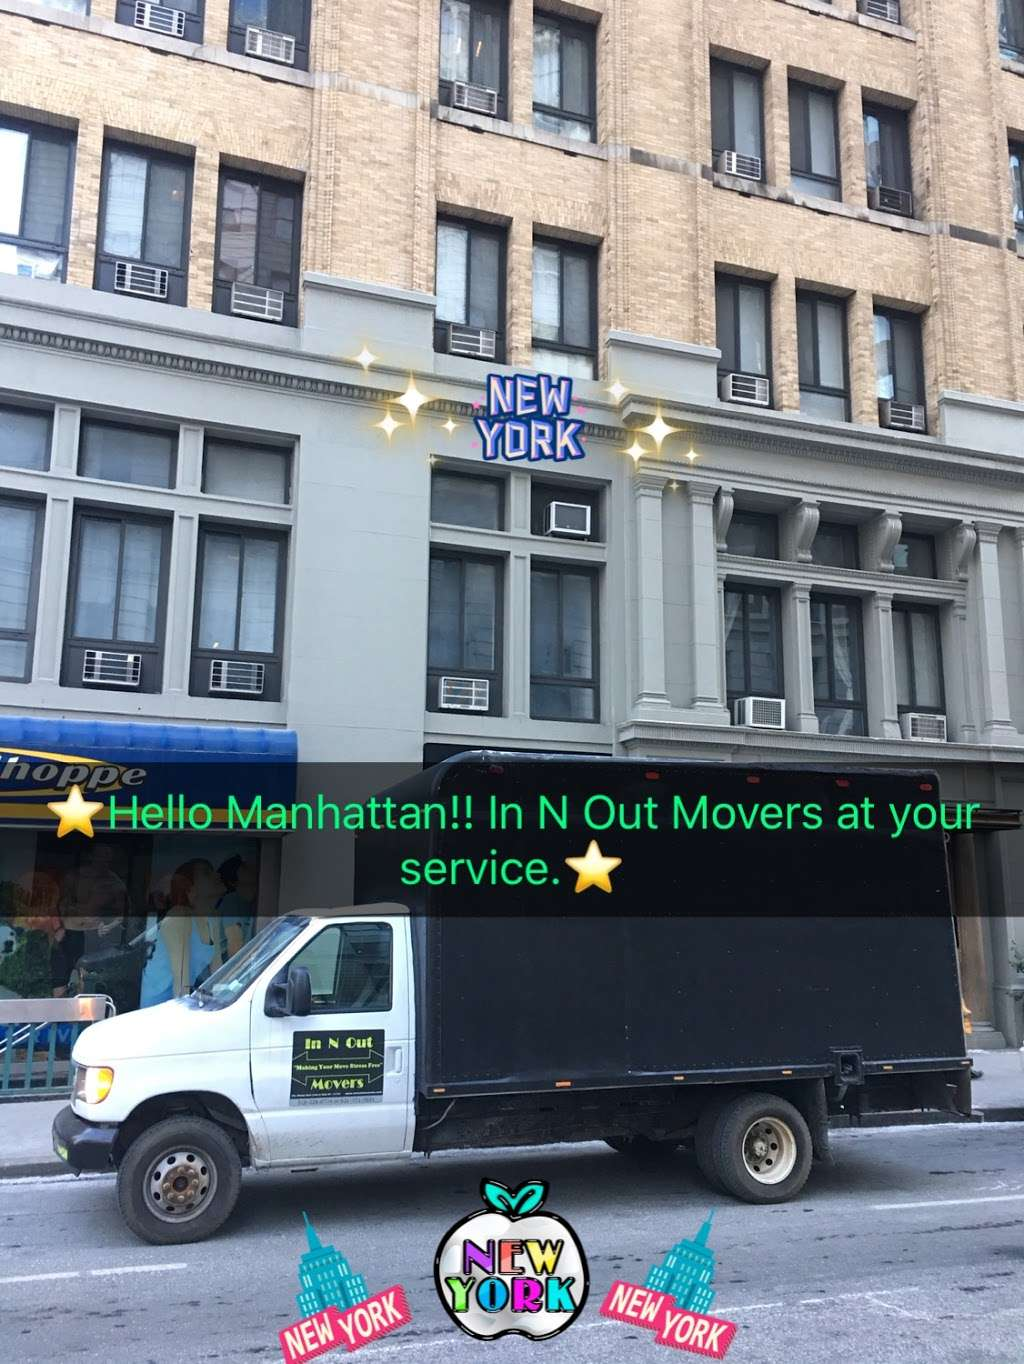 In N Out Movers Corp - Moving company | 701 Wilson Blvd